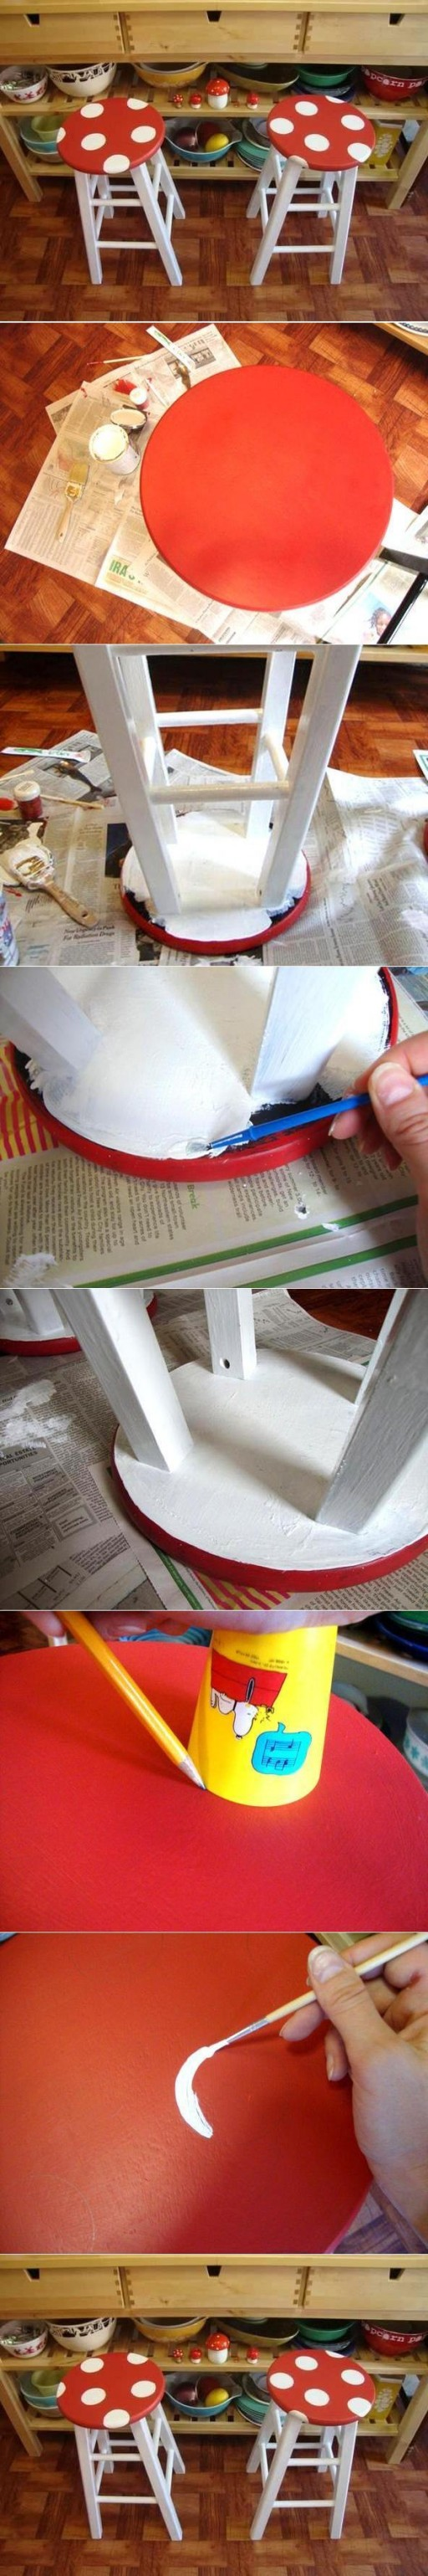 How to make Agaric Stool step by step DIY tutorial instructions